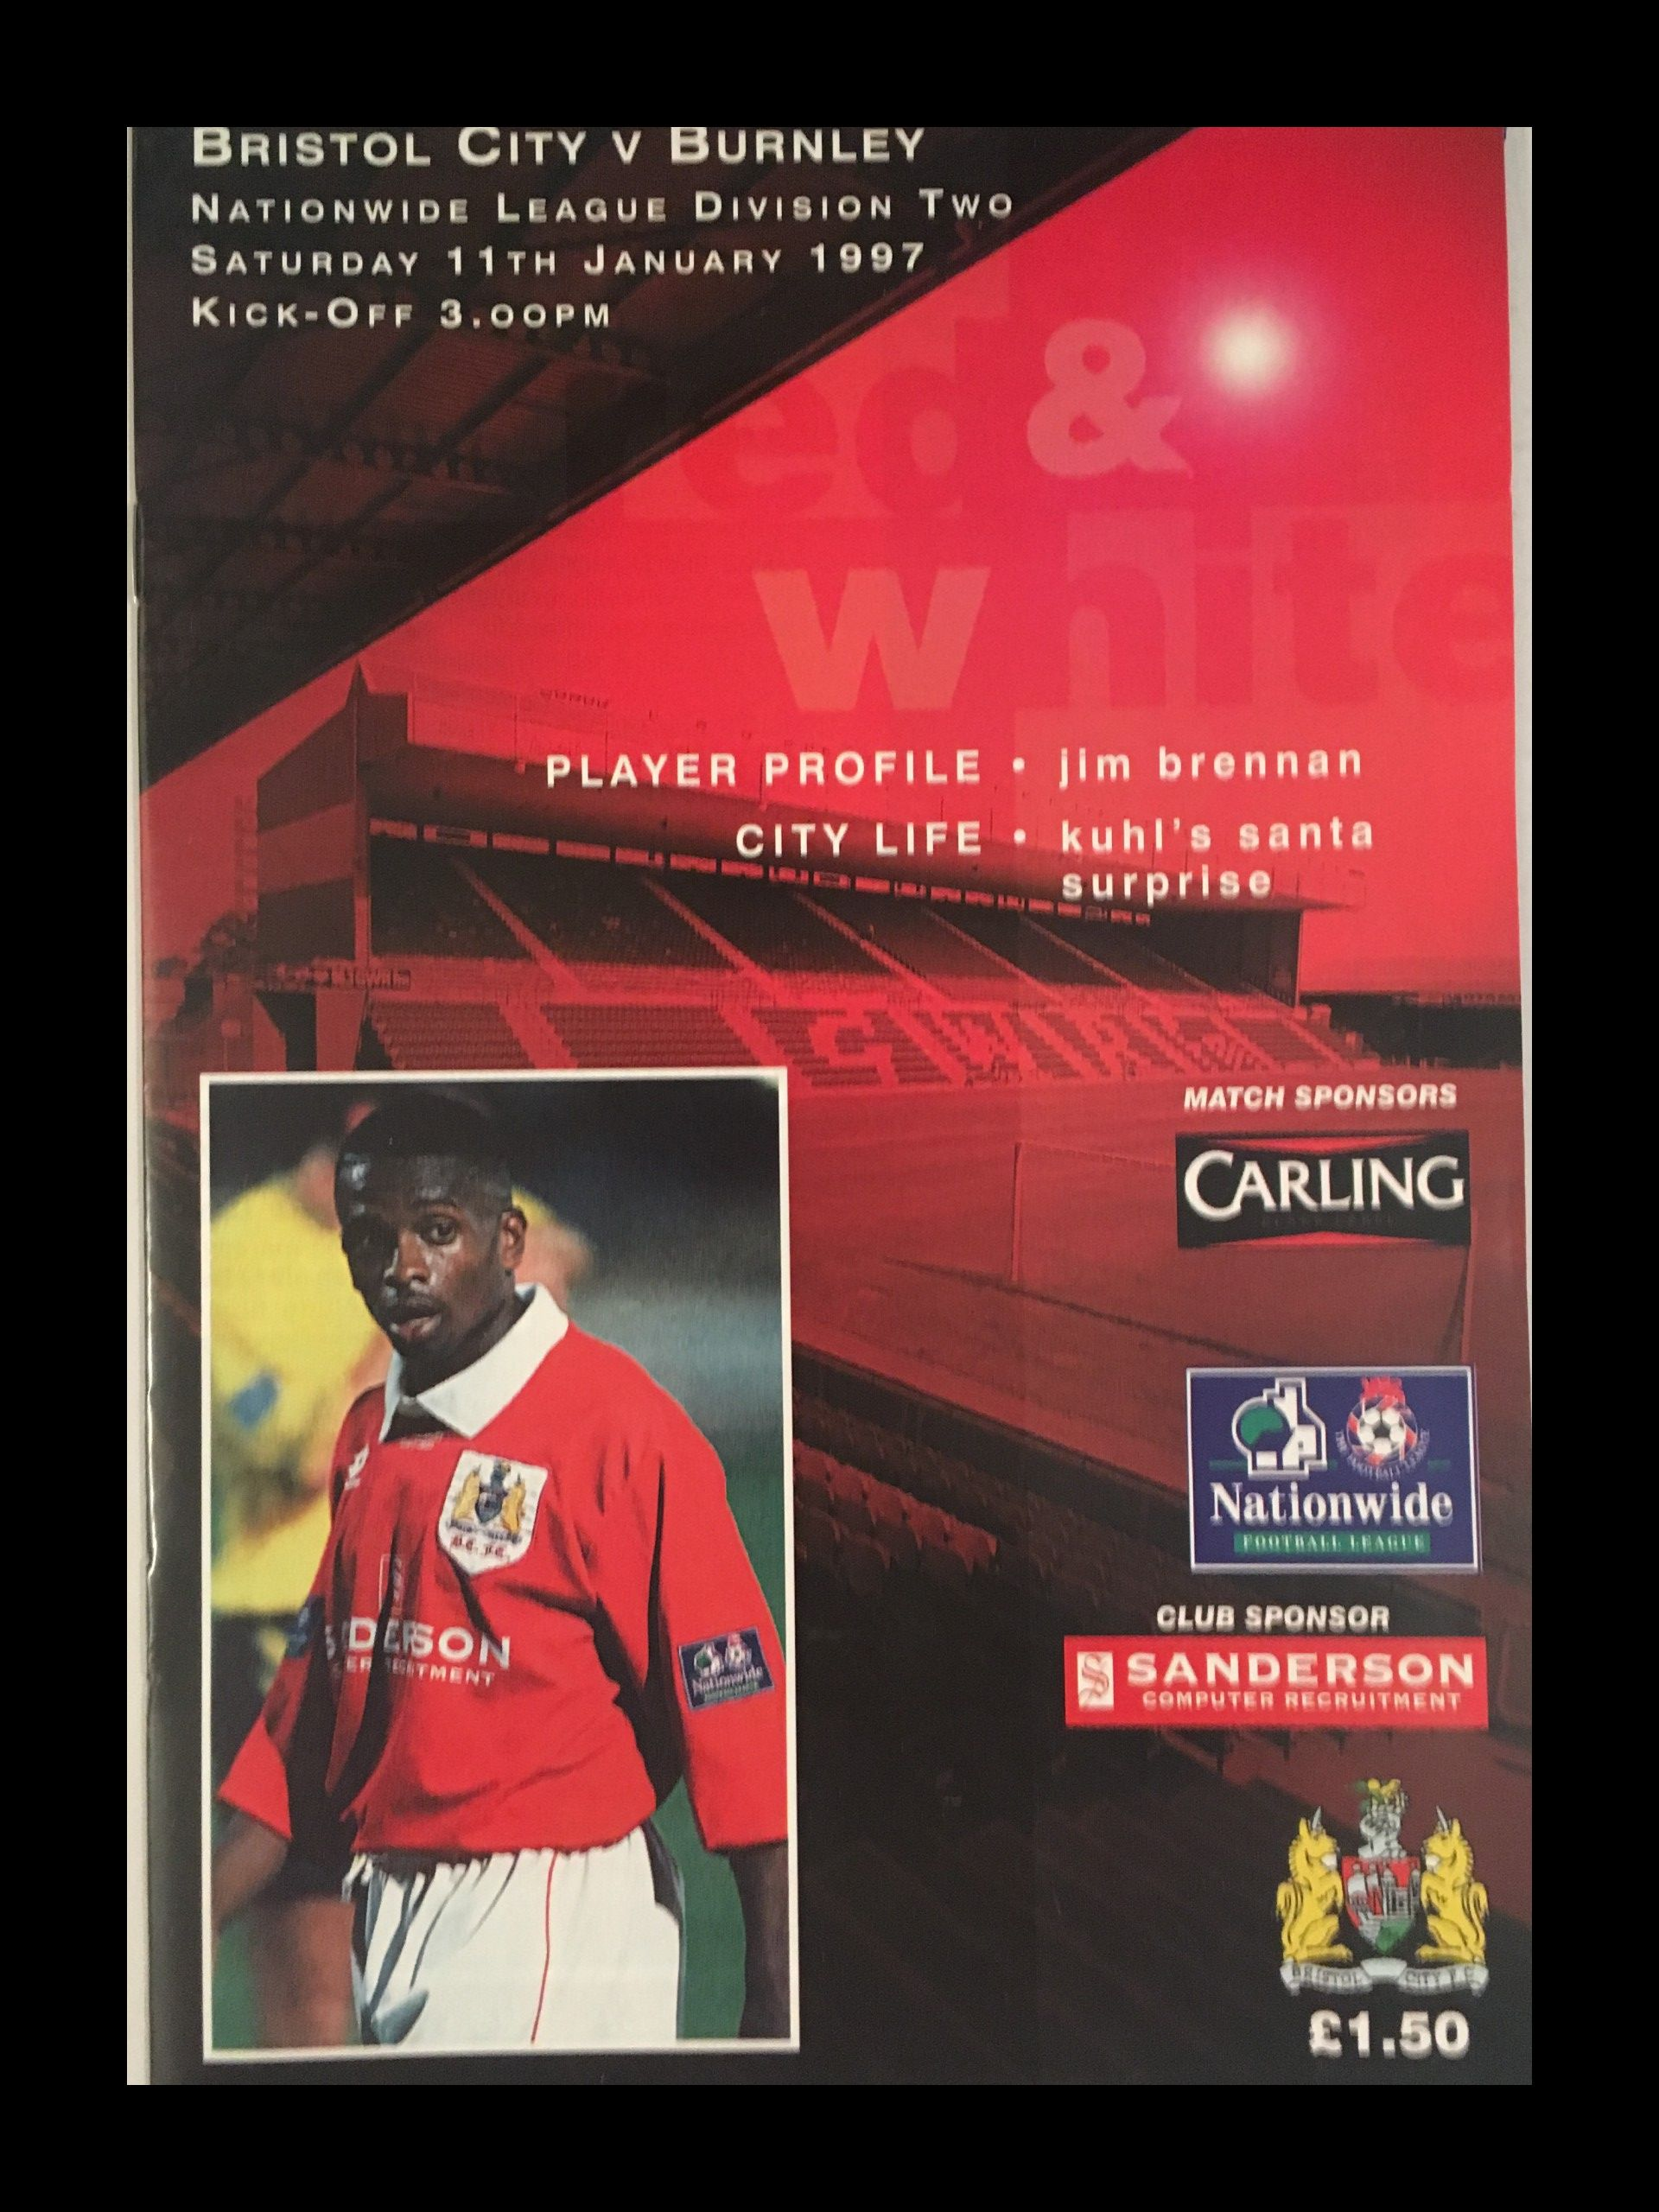 Bristol City v Burnley 11-01-1997 Programme